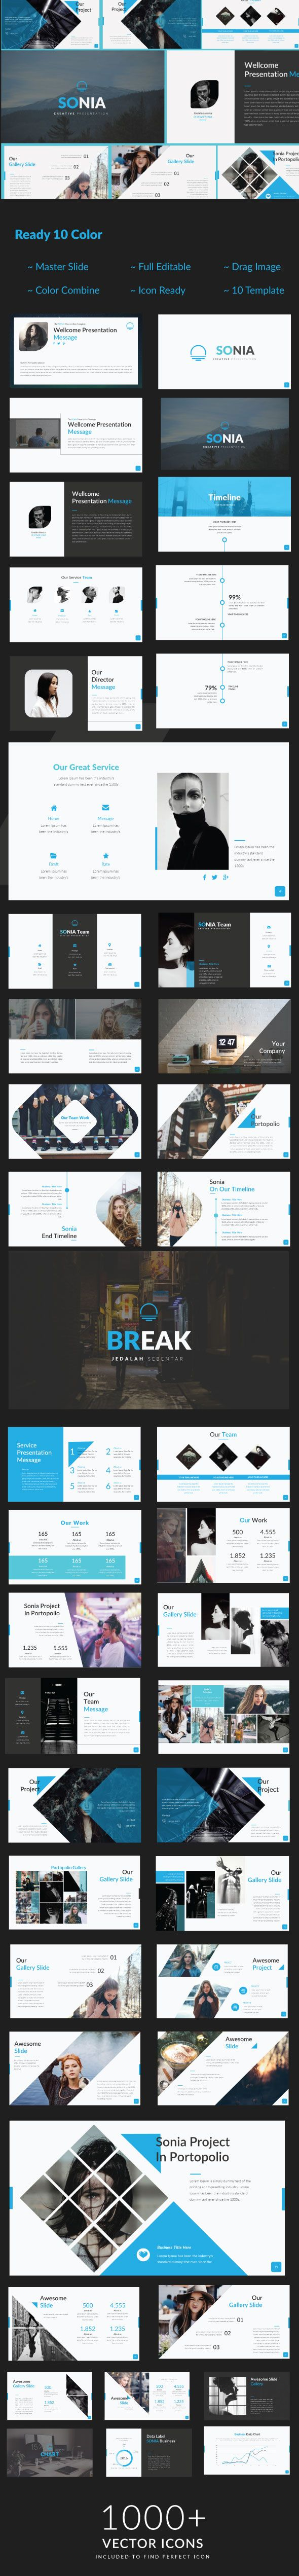 2065 best keynote templates images on pinterest | keynote, Powerpoint templates